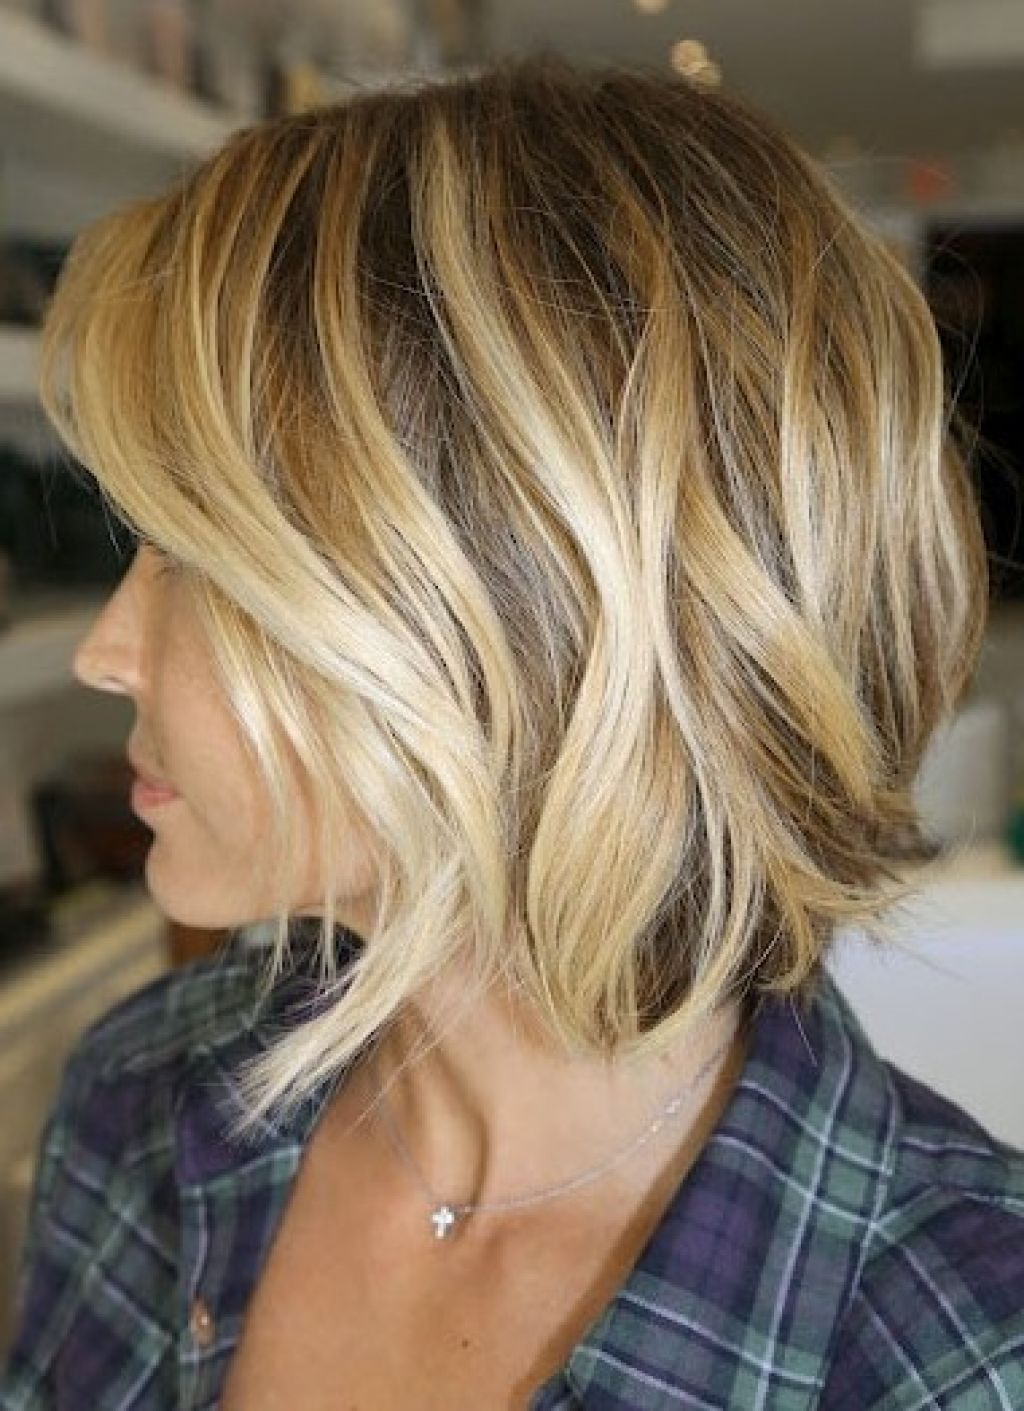 a unique and pretty touch of hairstyles for fall 2014 that